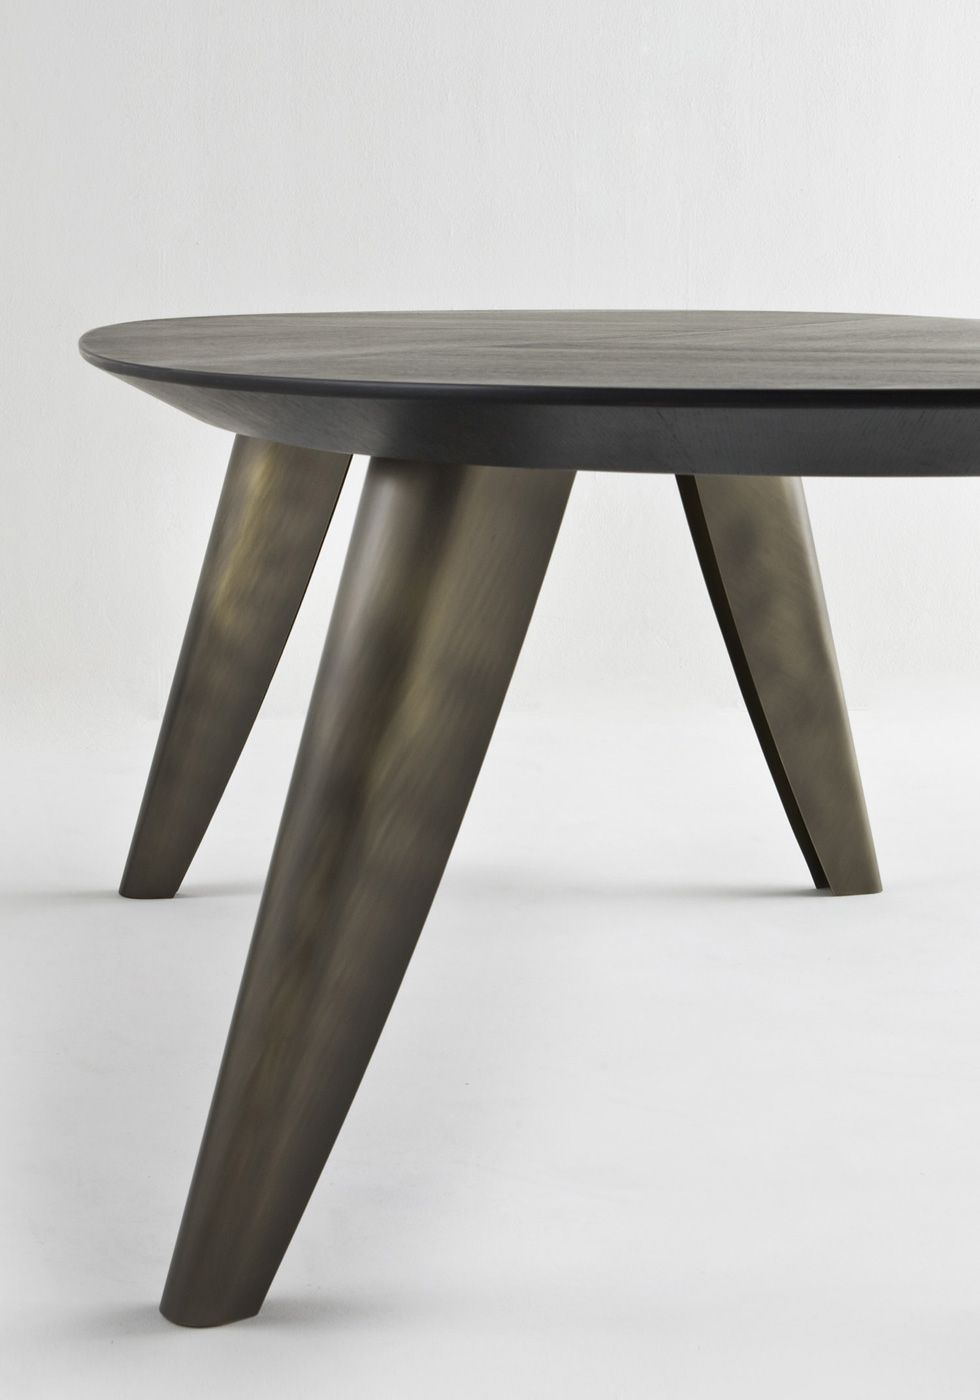 BD 161 E   Elliptical Table With Wood Veneered Top Made With Crossed  Grains. Legs